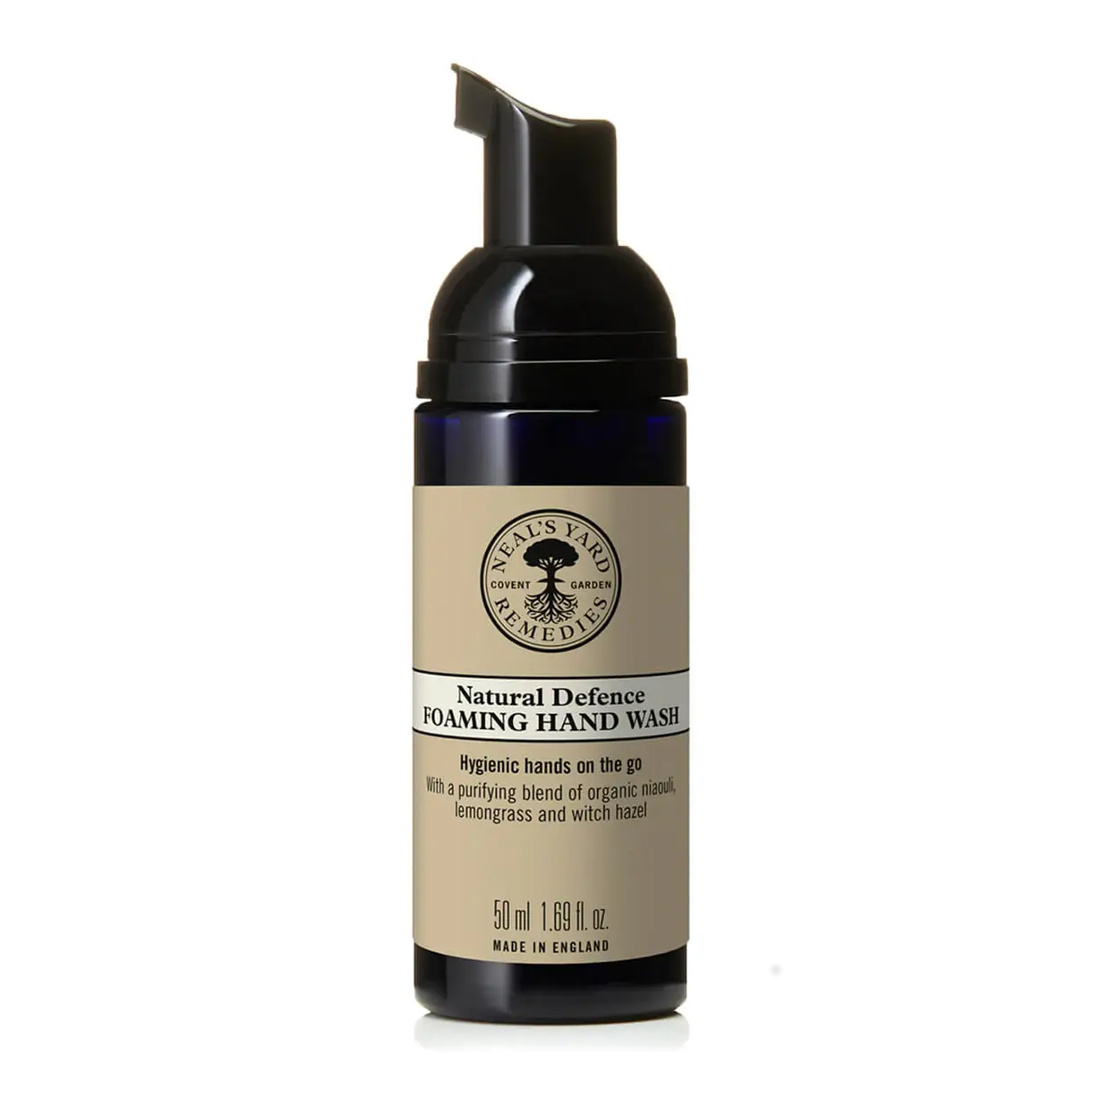 Neal's Yard Remedies Natural Defence Foaming Hand Wash 50ml